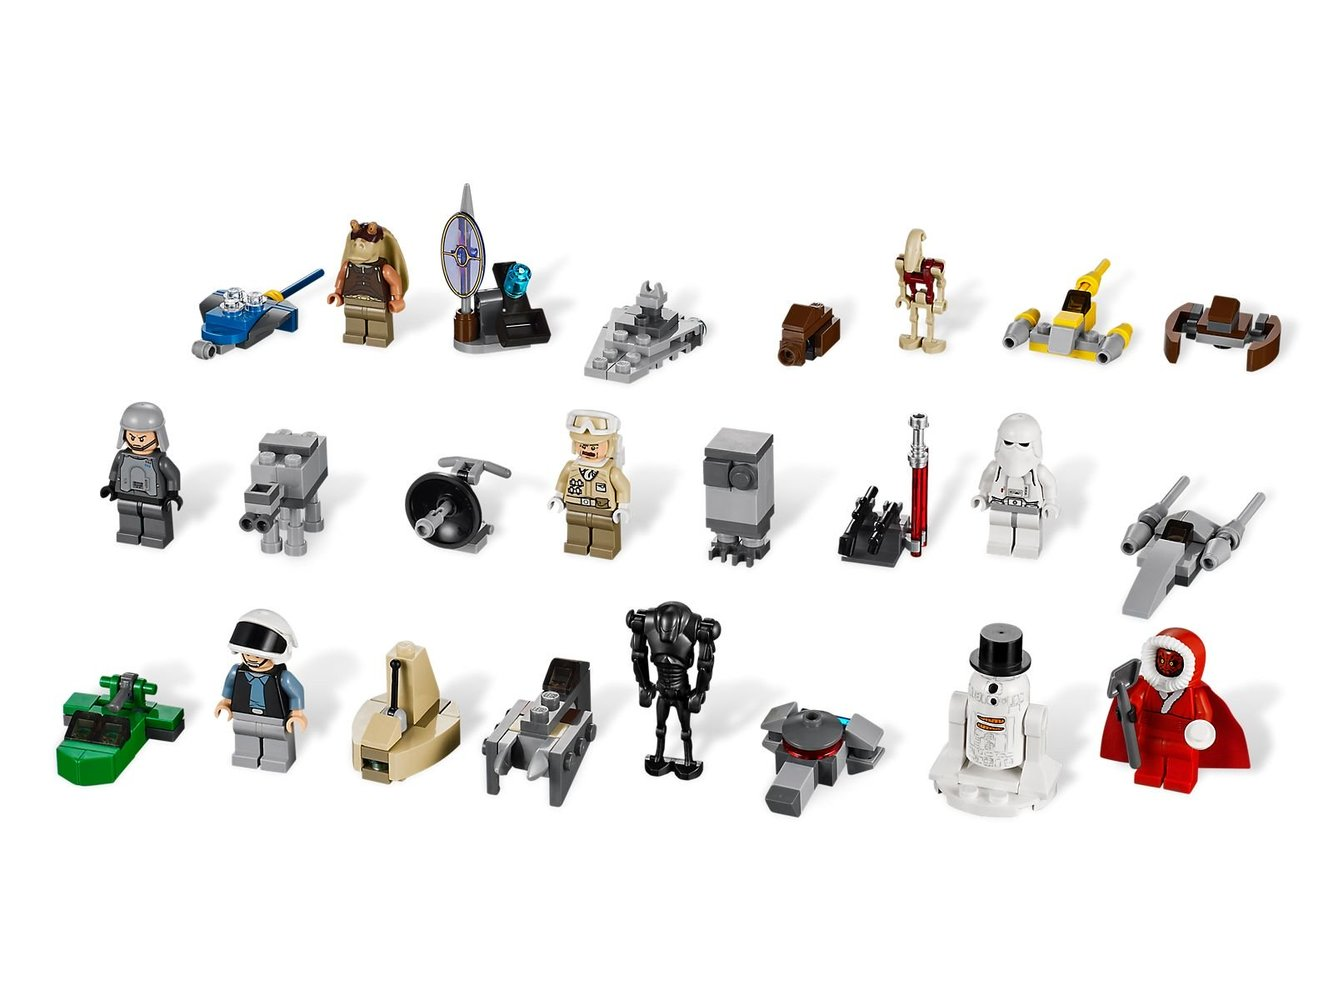 Star Wars Advent Calendar 2012